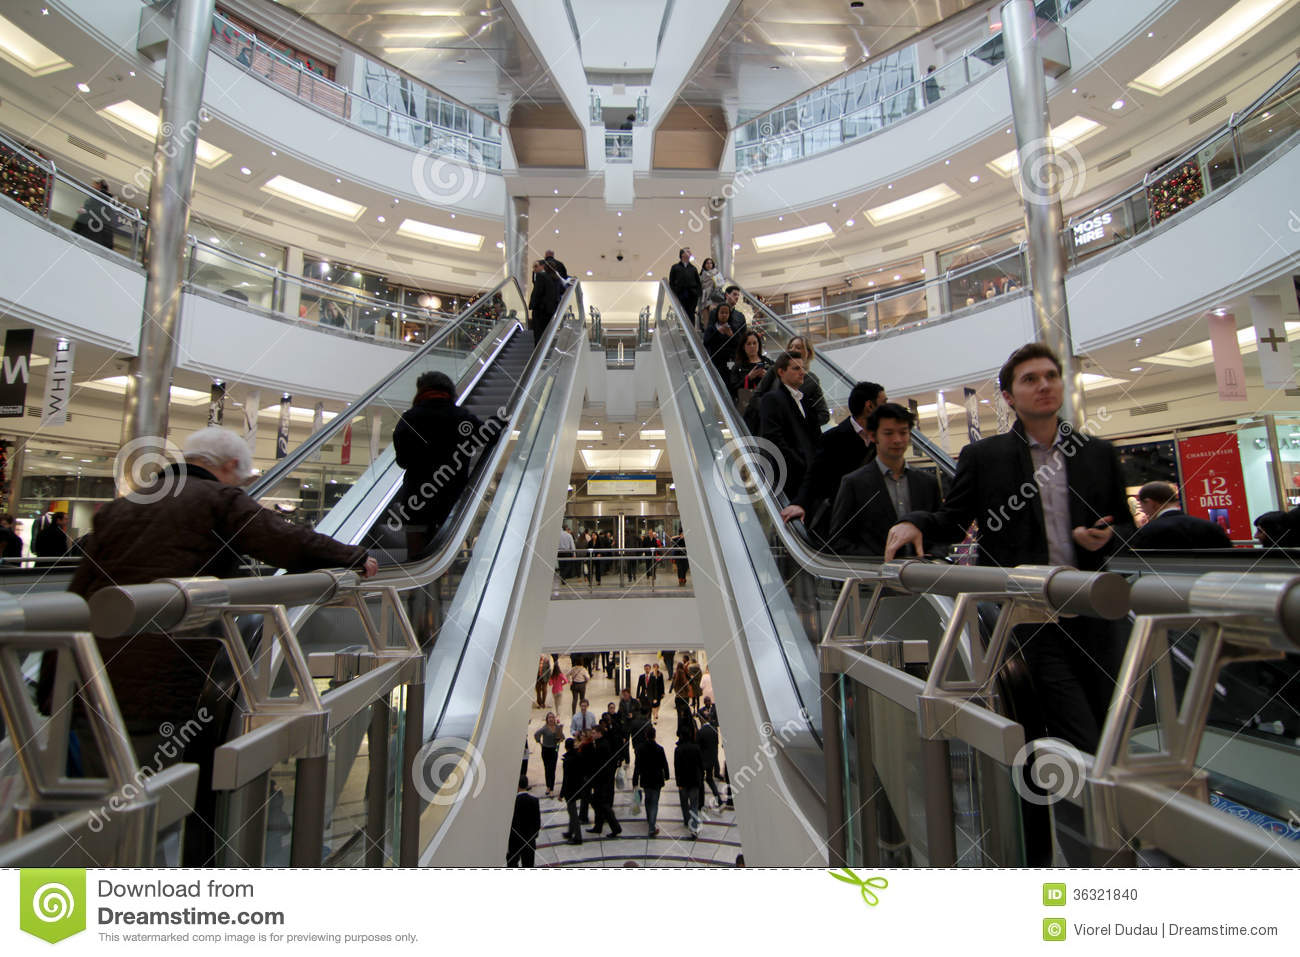 description of a busy shopping mall Enjoy luxury shopping at more than 160 designer and fashion brands with up to 60% off rrp from 46 minutes from london marylebone and 10 minutes from oxford by train.